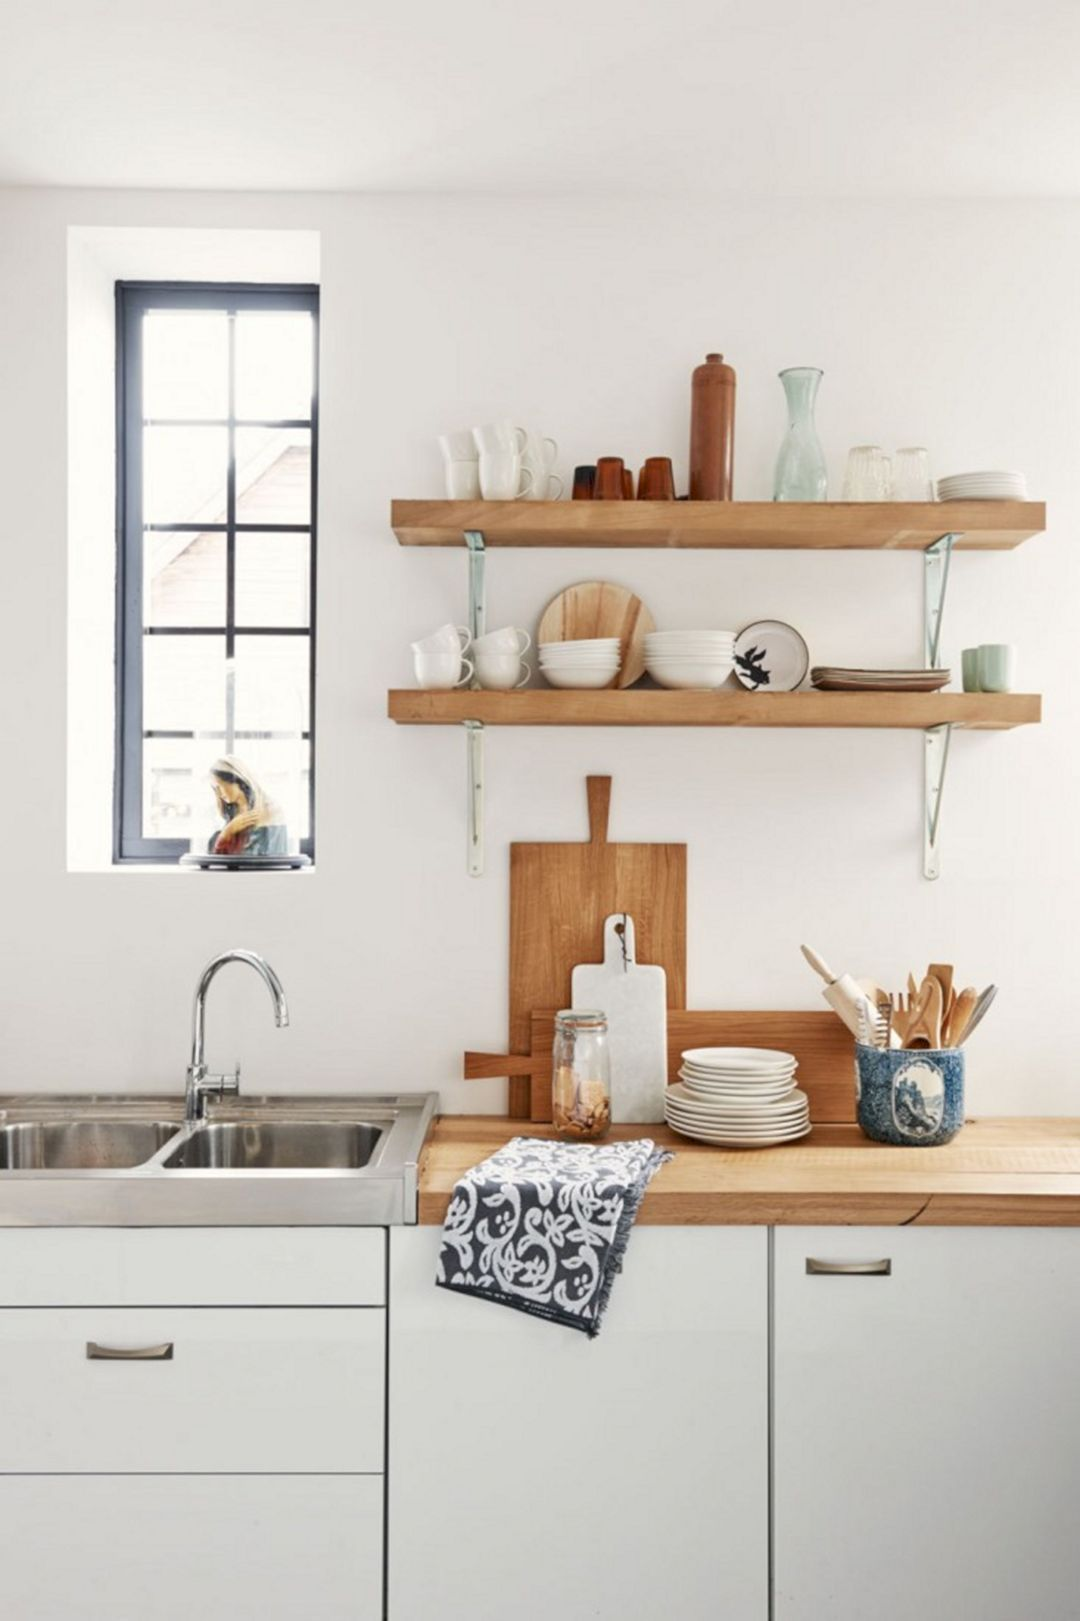 Wall Kitchen Shelves Kitchen Shelf Design Wall Mounted Kitchen Shelves Kitchen Wall Shelves